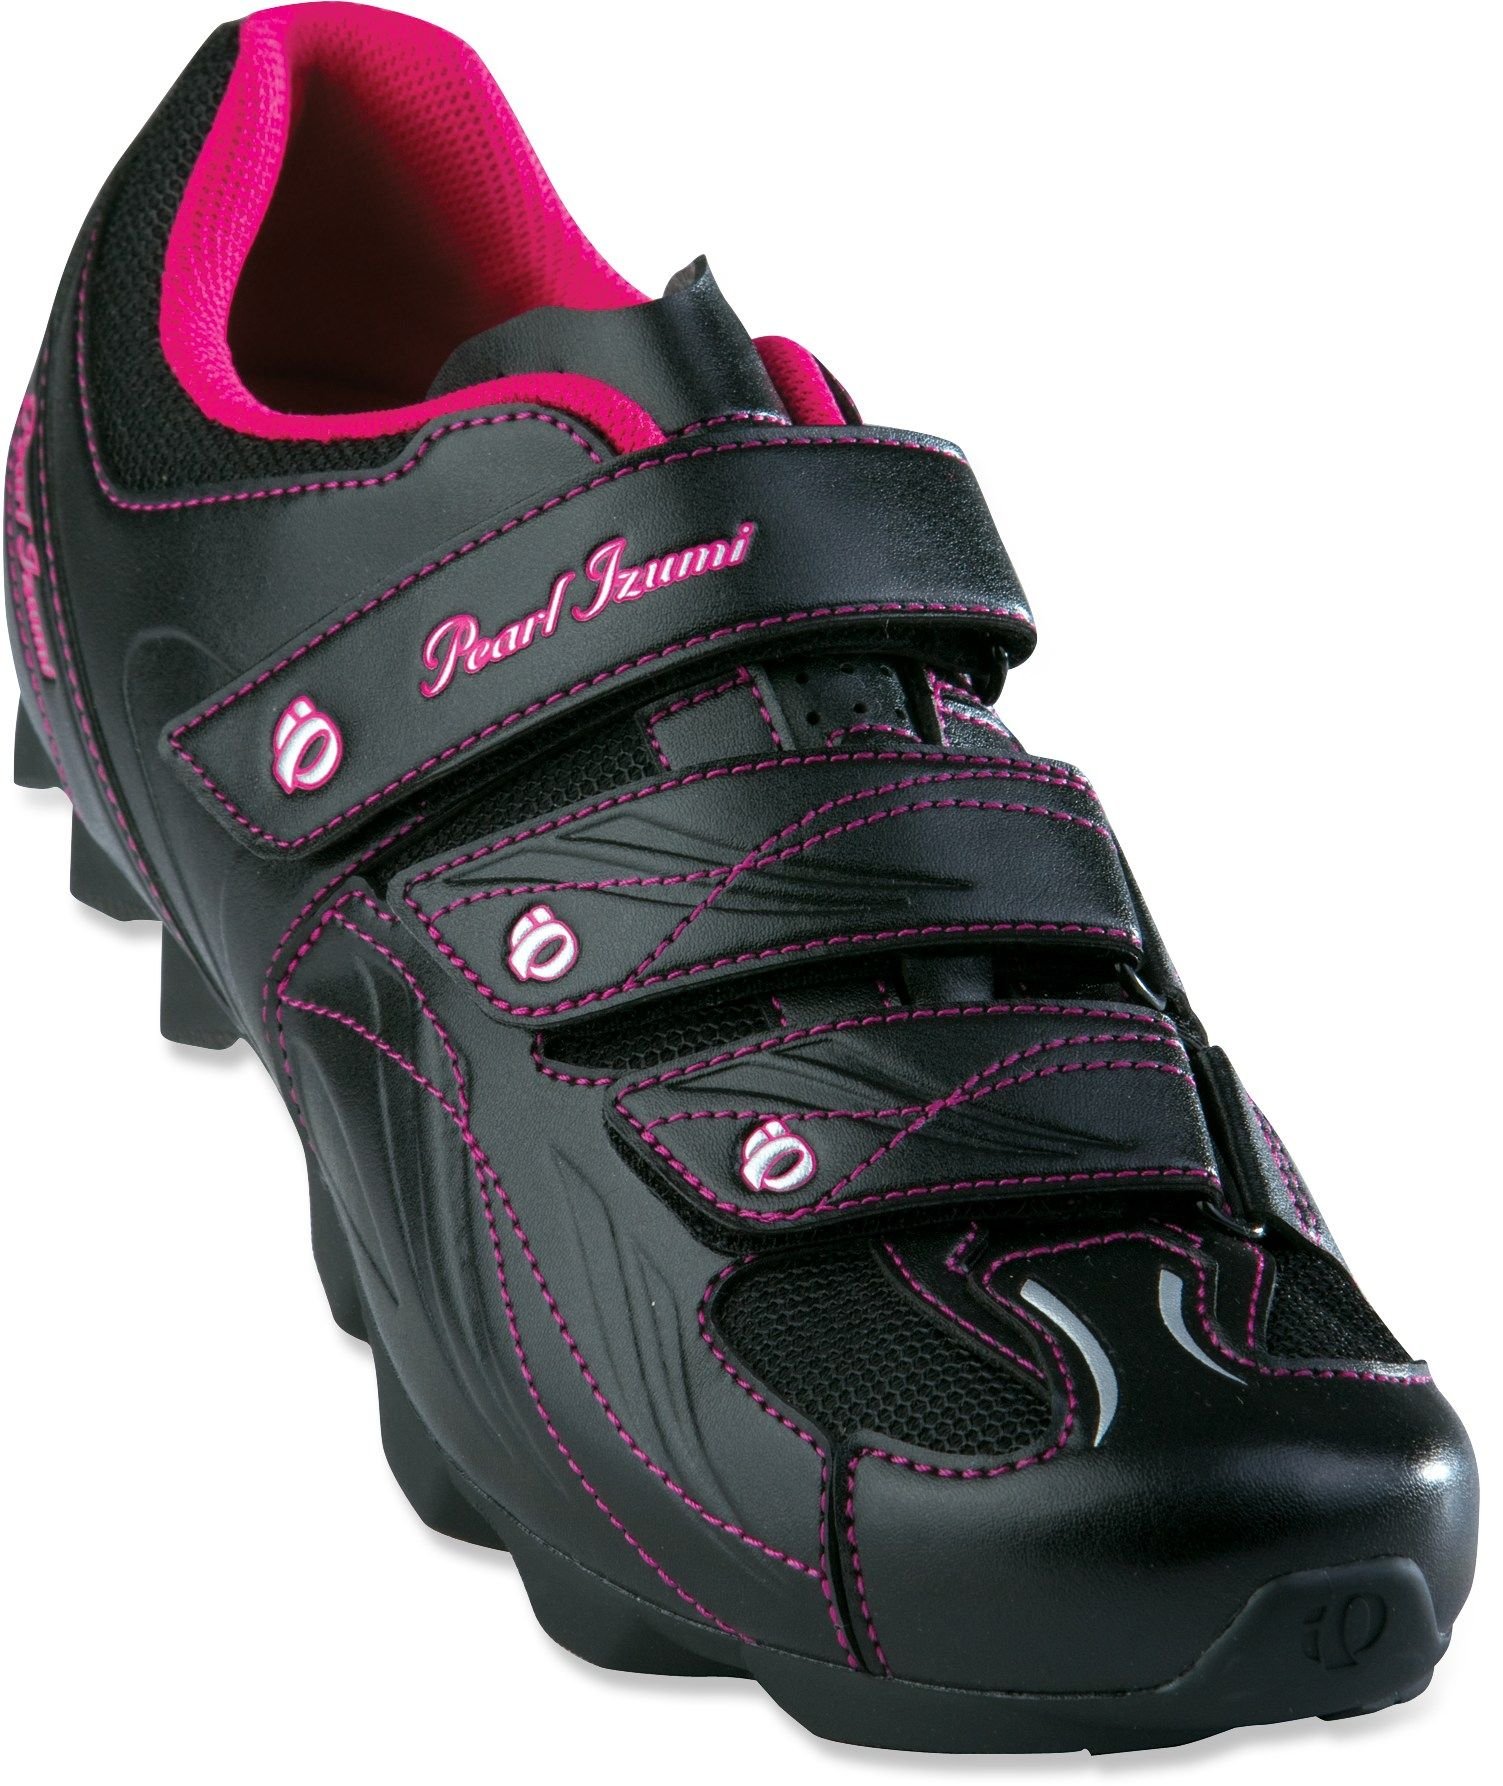 63 pearl izumi all road bike shoes women 39 s free shipping at use with spd pedals. Black Bedroom Furniture Sets. Home Design Ideas